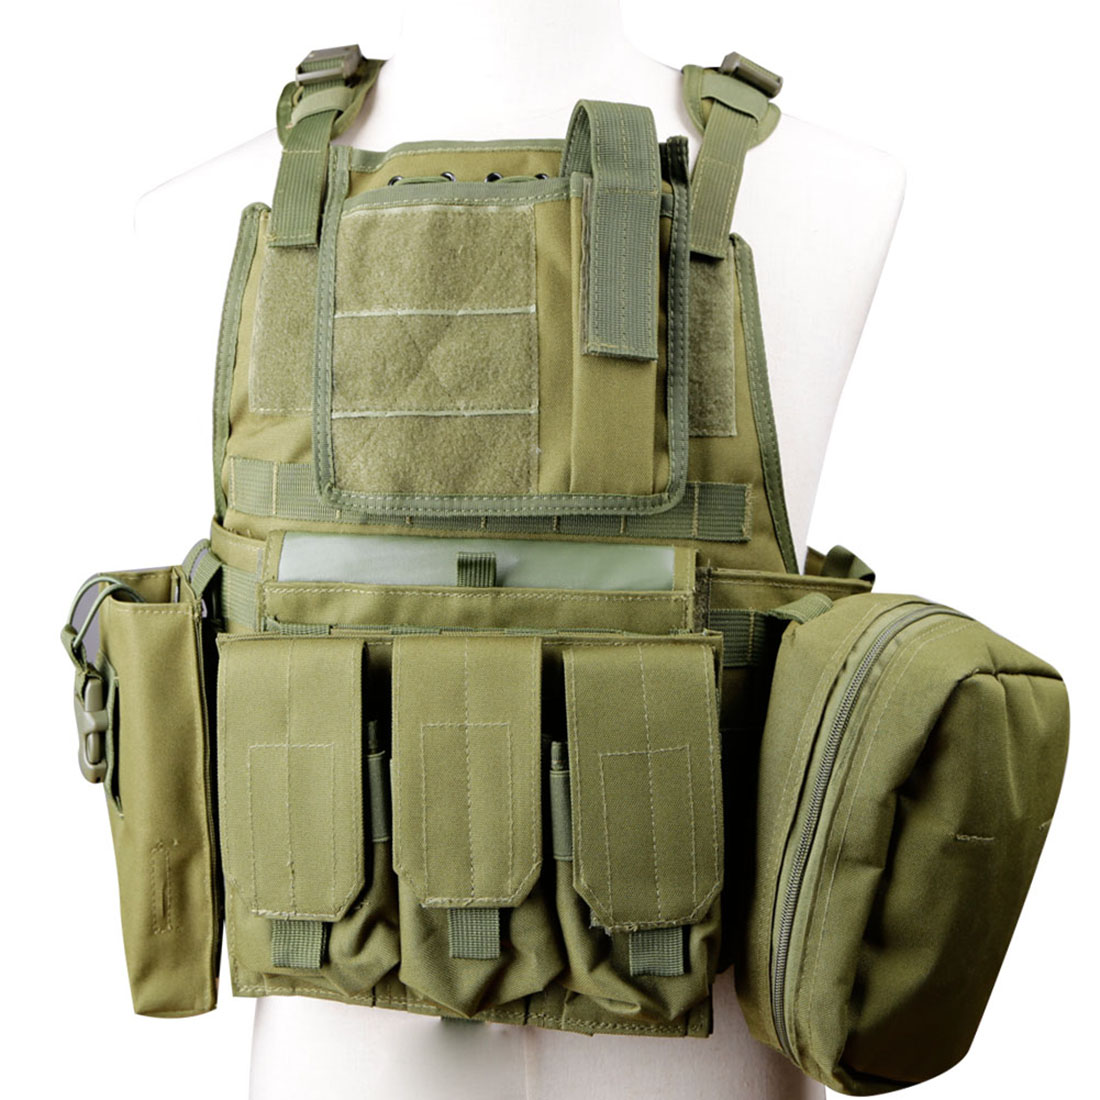 Molle Military Quick Release Tactical Vest Safety Vest Adjustable Outdoor Airsoft Paintball Protective Vest For Hunting Shooting